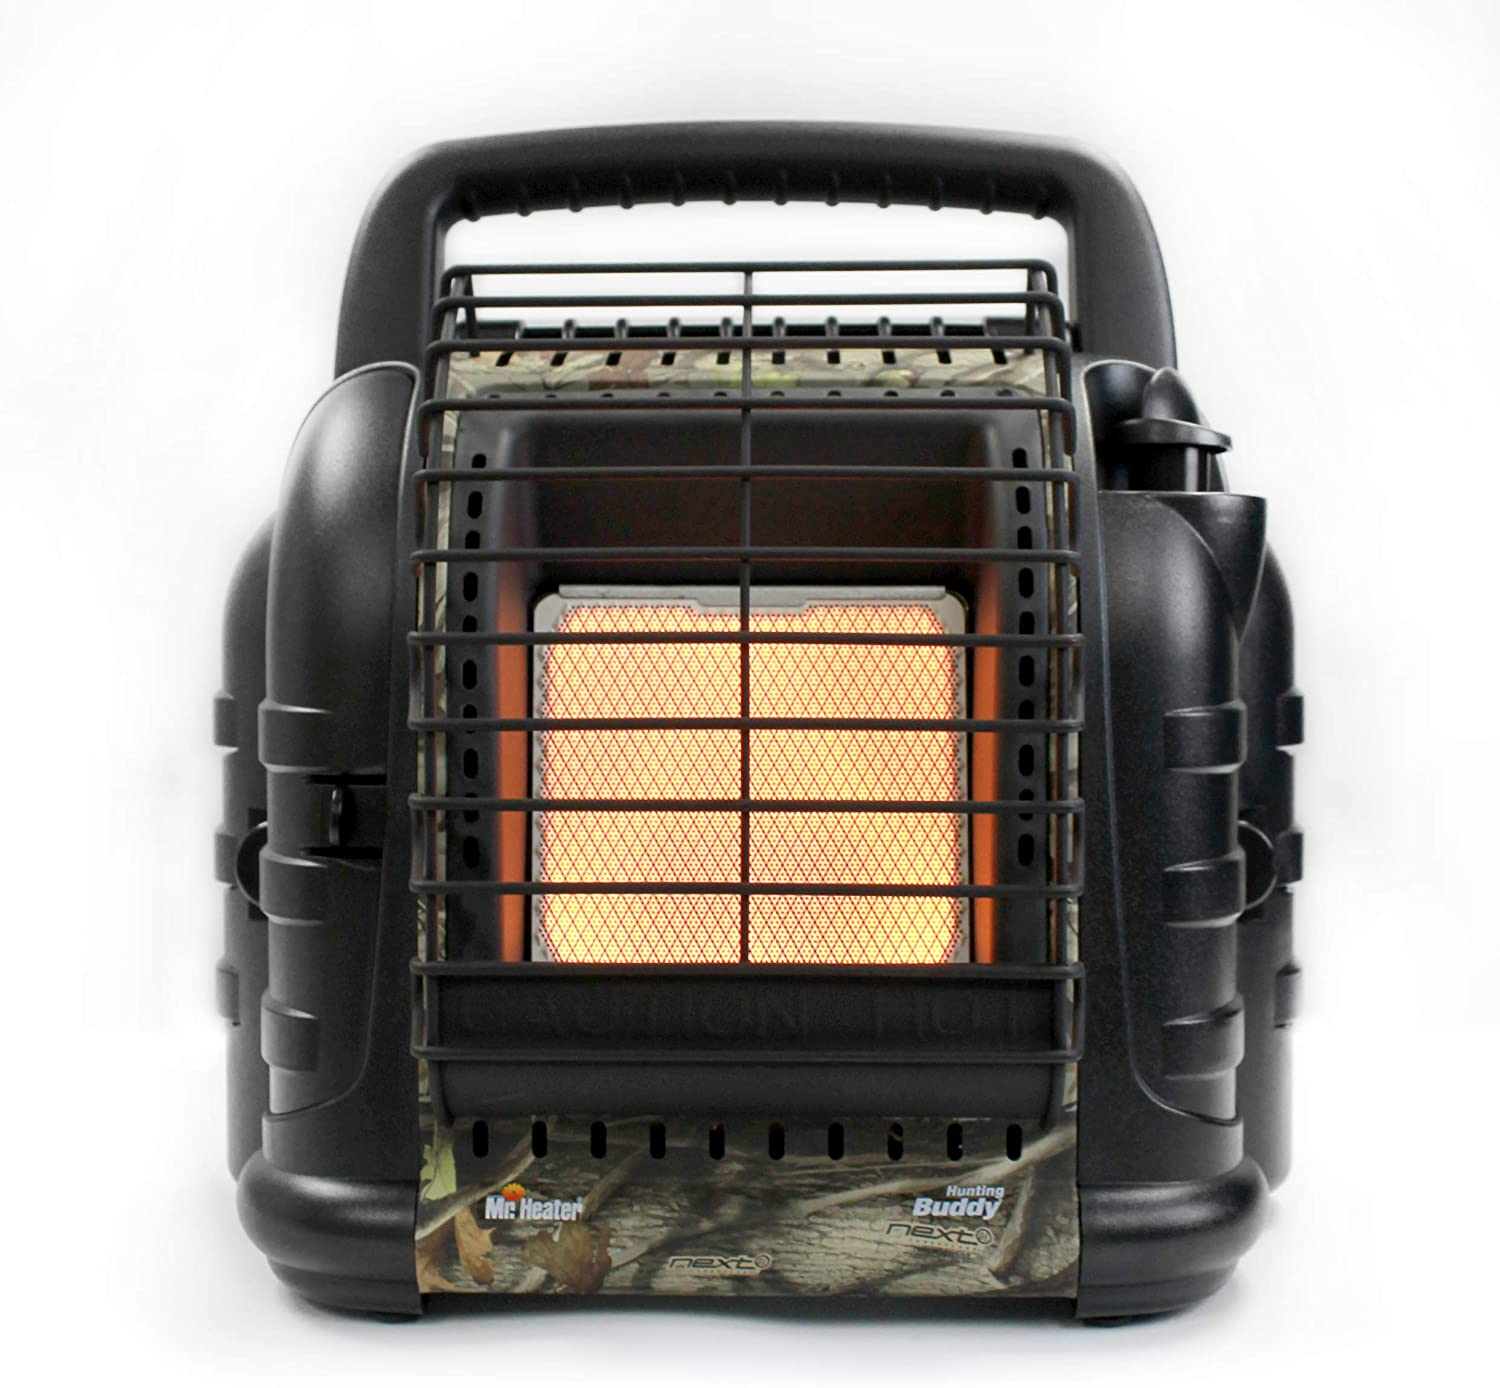 Mr Heater MH18B Propane Heater